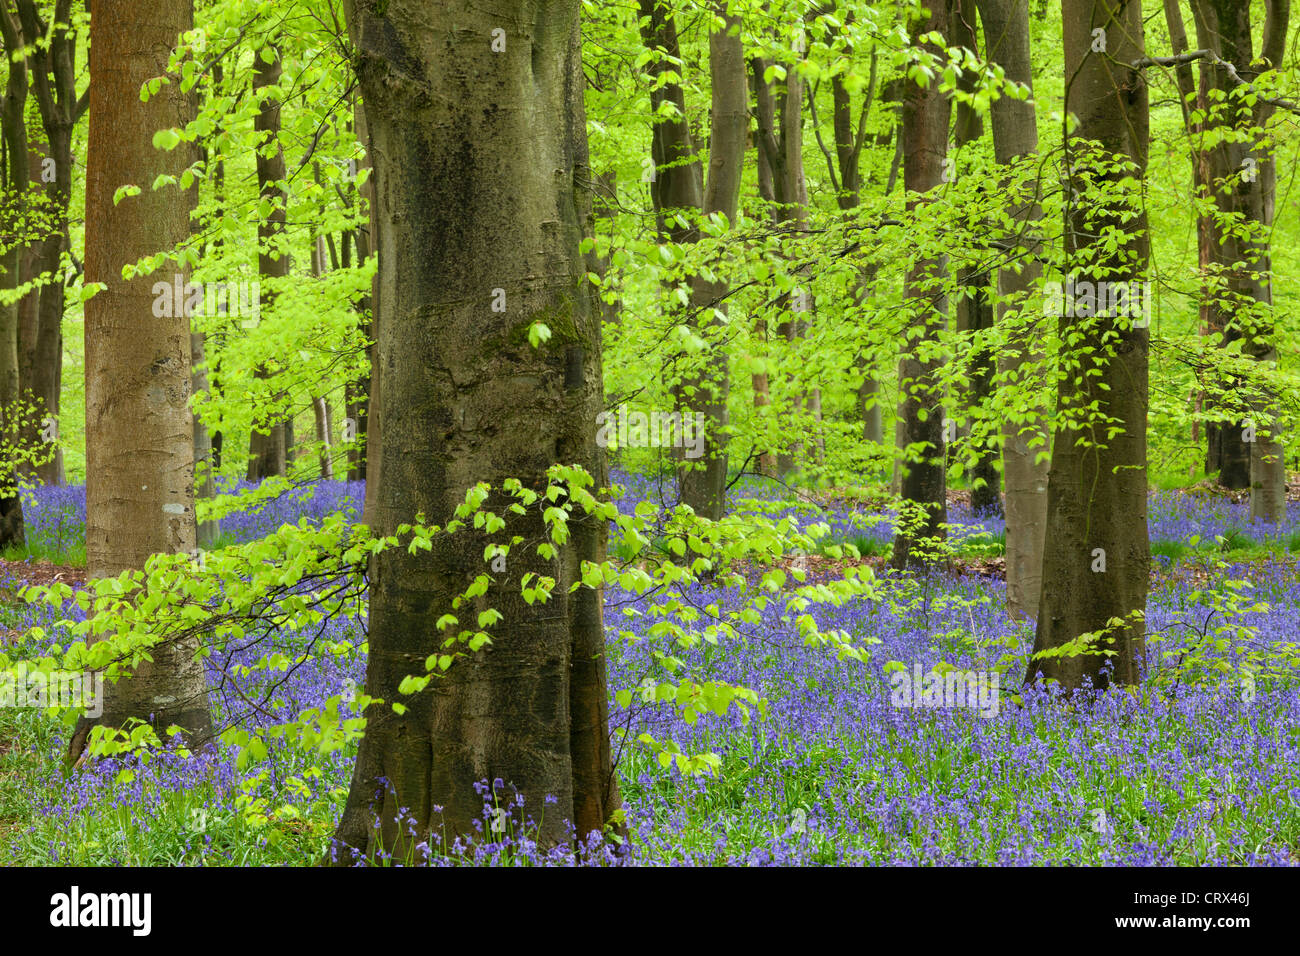 Bluebell carpet in a beech woodland, West Woods, Lockeridge, Wiltshire, England. Spring (May) 2012. - Stock Image